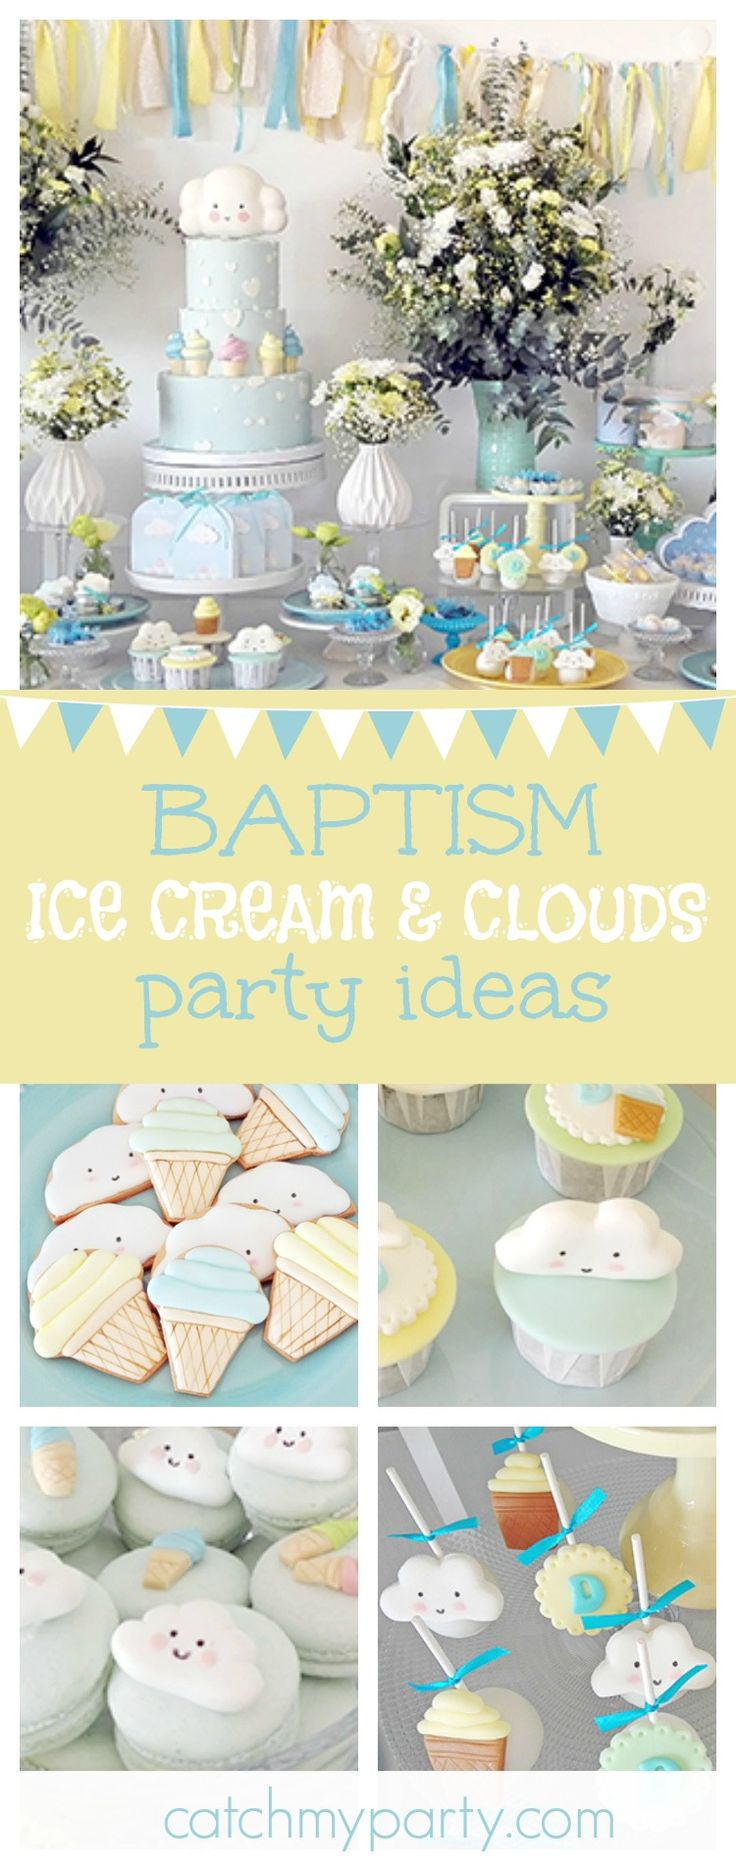 Don't miss this fantastic Clouds & Ice Cream Baptism celebration! The birthday cake is gorgeous!! See more party ideas and share yours at CatchMyParty.com